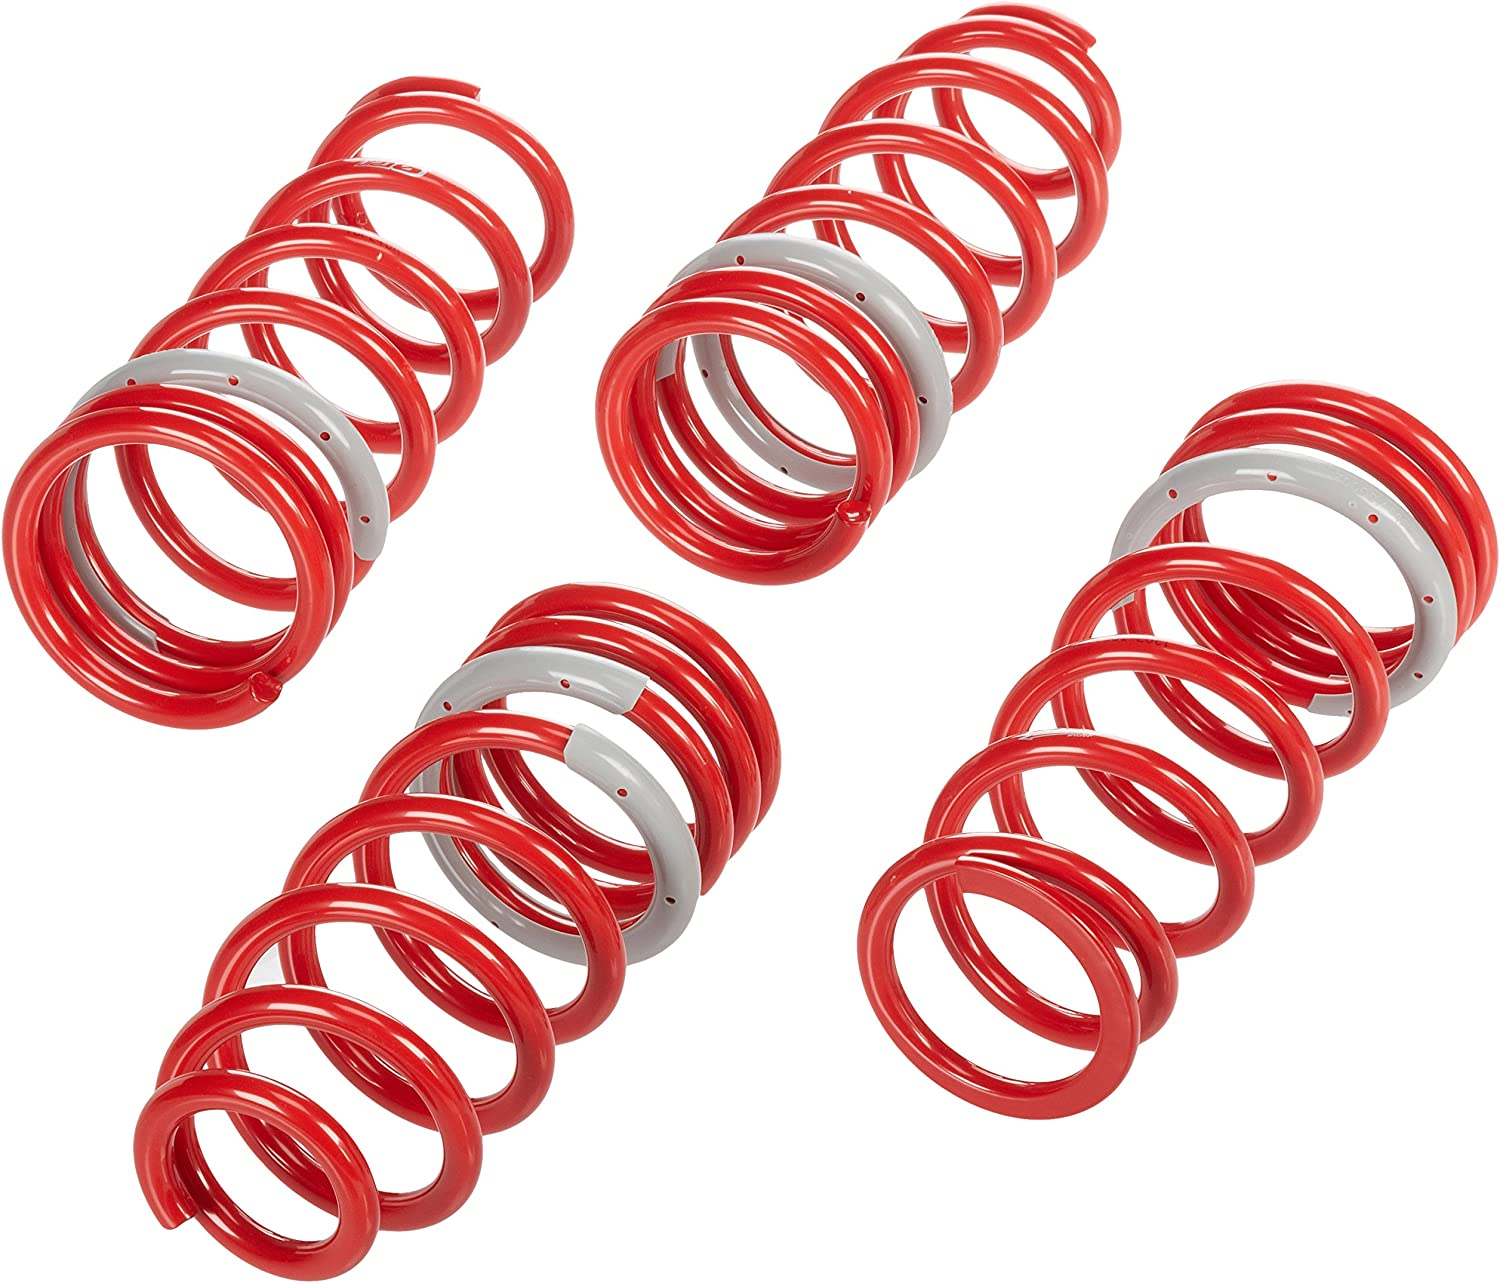 Tanabe TDF046 DF210 Lowering Spring with Lowering Height 1.5//1.5 for 2002-2004 Acura RSX